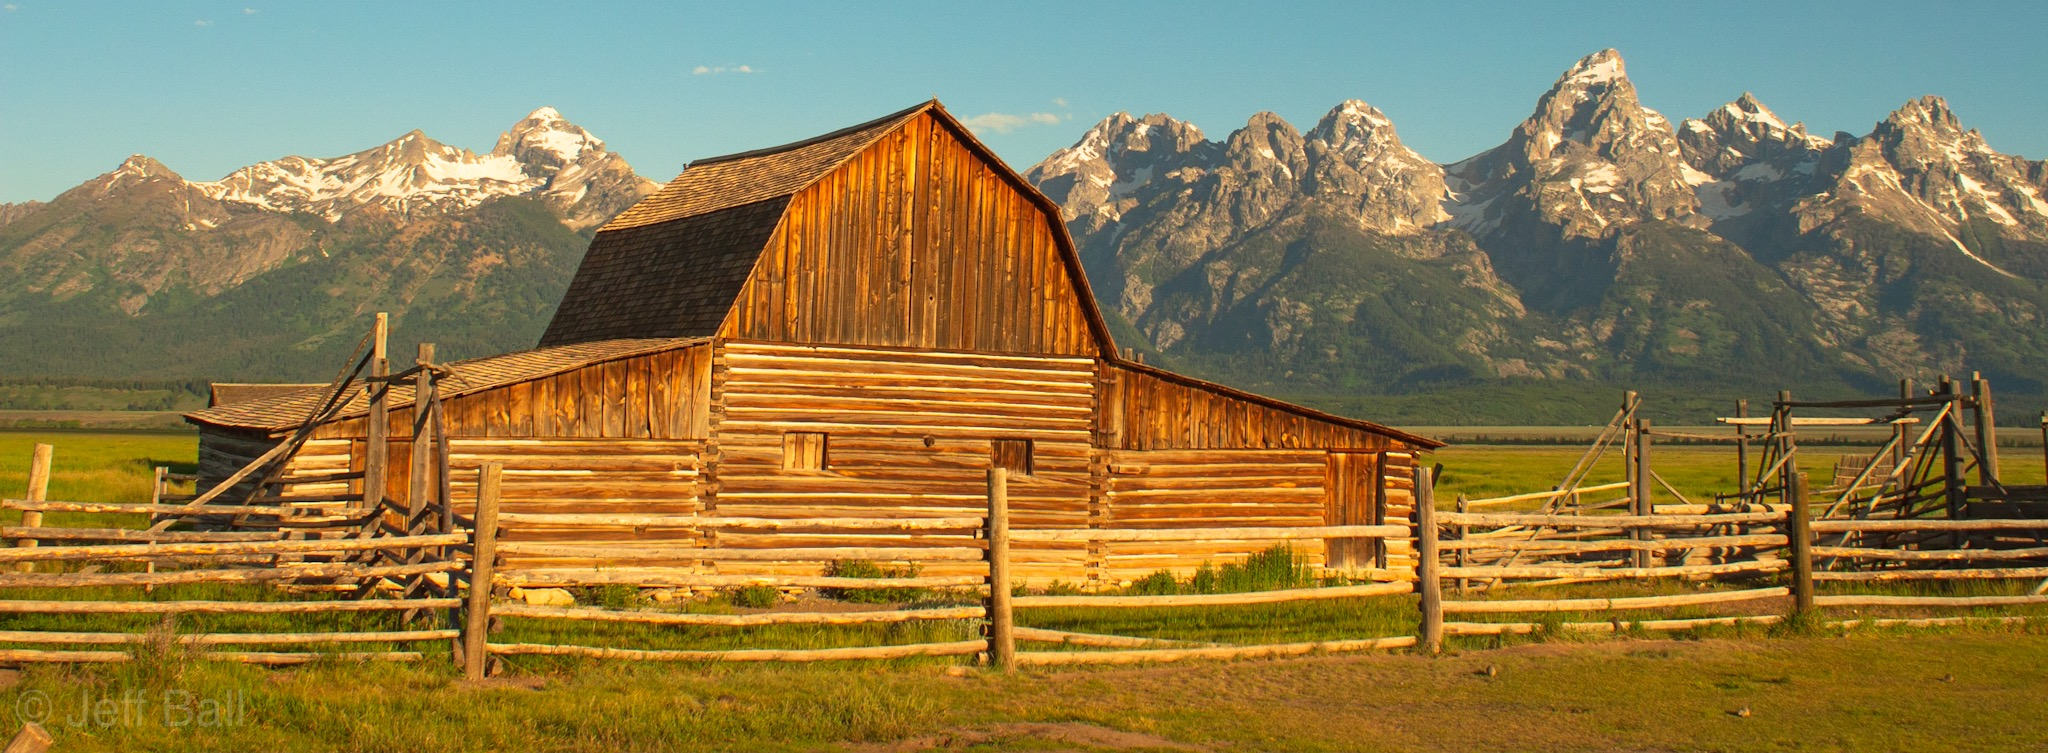 Mormon Barn and Grand Tetons